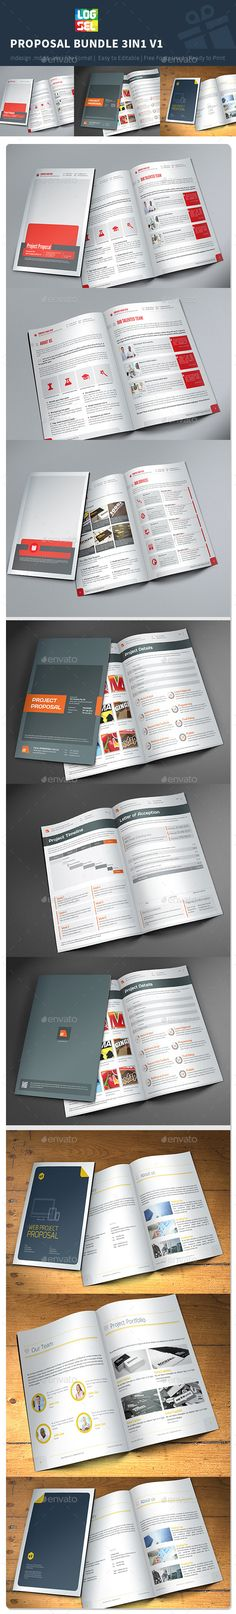 SEO - Business Proposal Templates Bundle II Business proposal - proposal templates